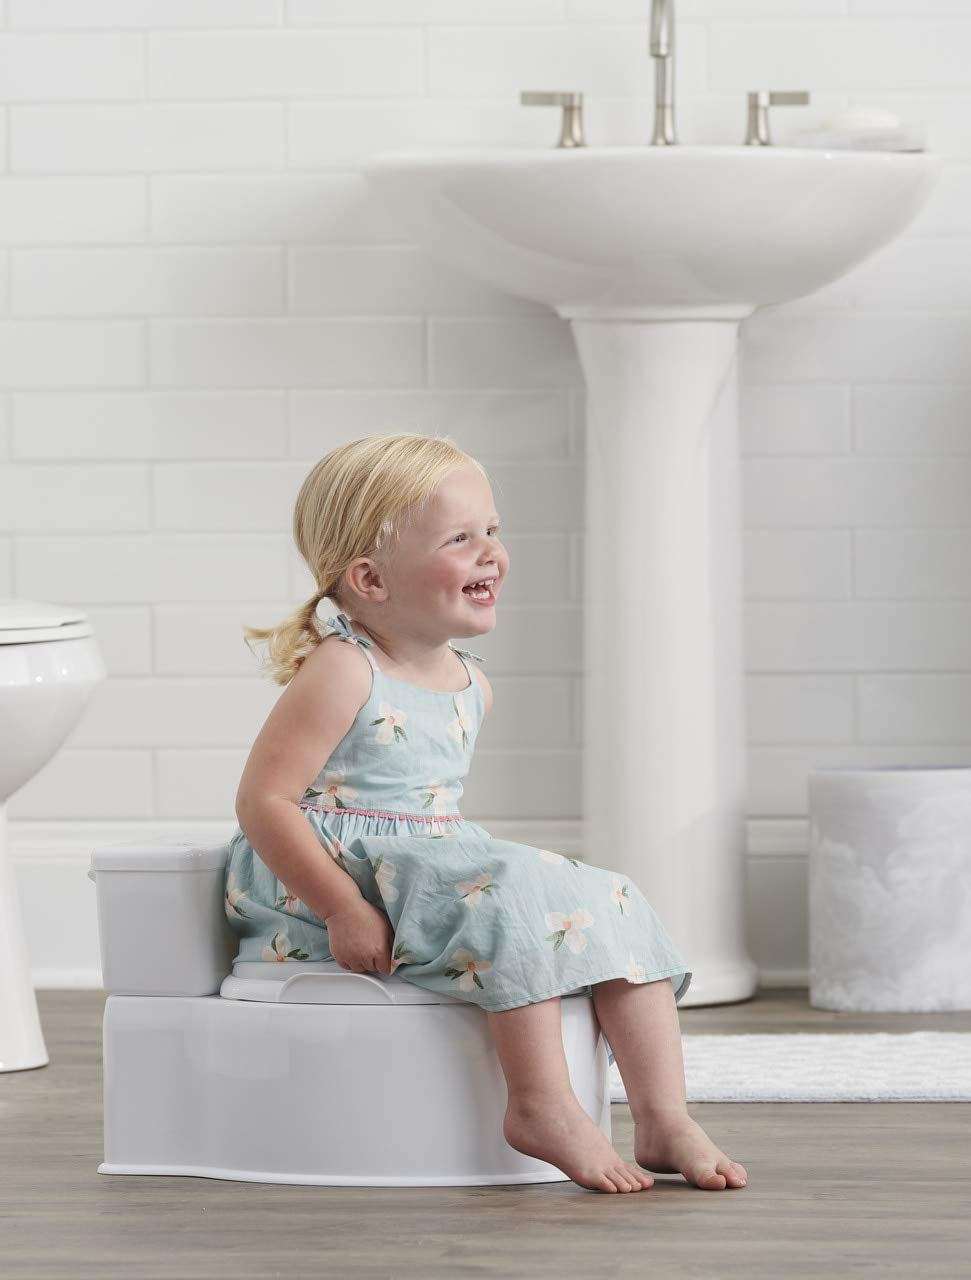 Regalo 2-in-1 My Little Potty Training & Transition Potty, Grow with Me & On The Go, Bonus Kit, Flushing Sound, Removable Training Transition Potty Seat, Oversized Foam Soft Seat & Wipe Storage,White